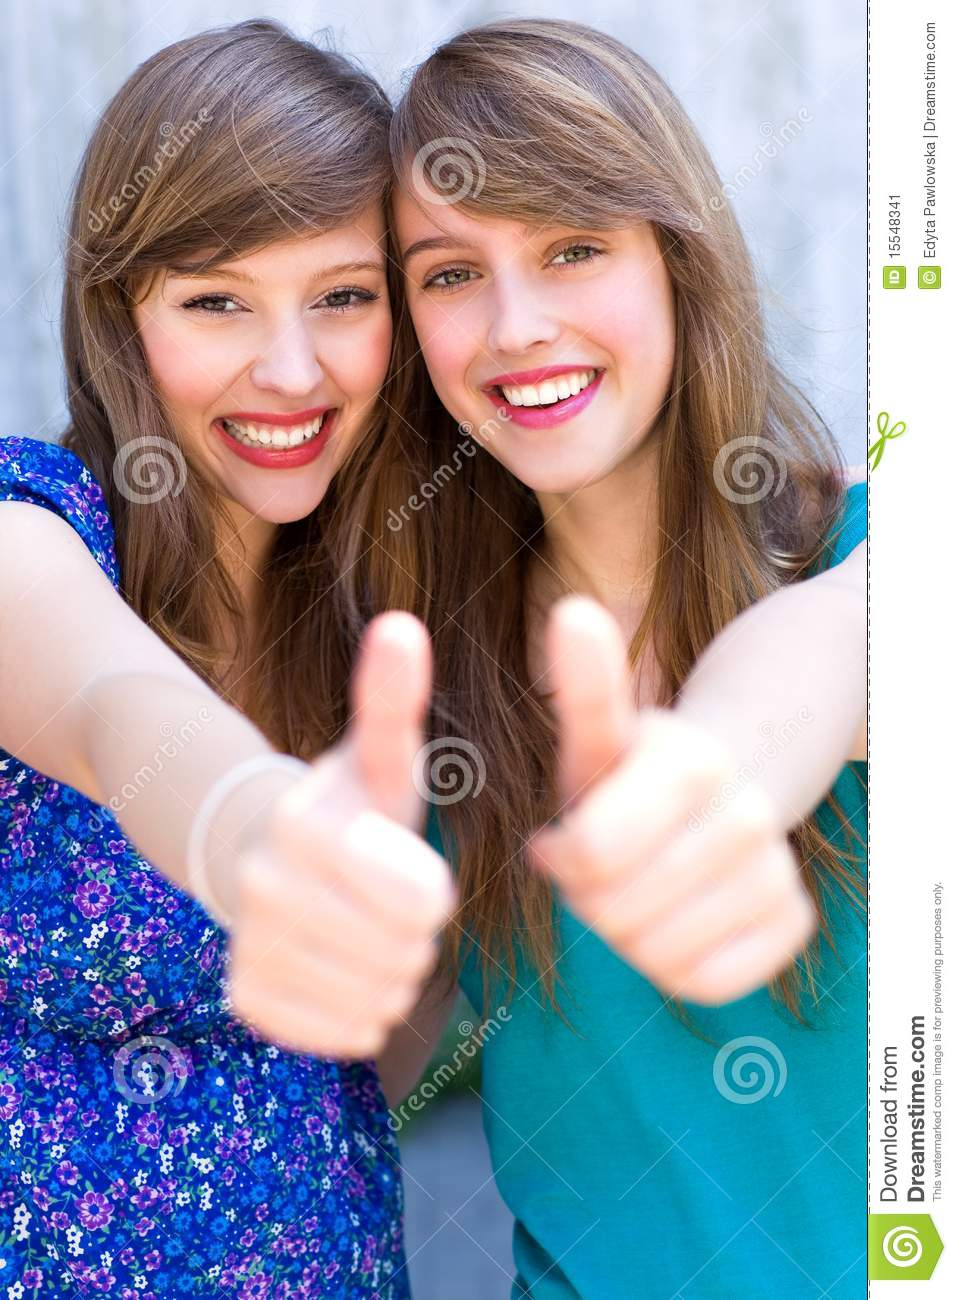 And women on girls thumbs join